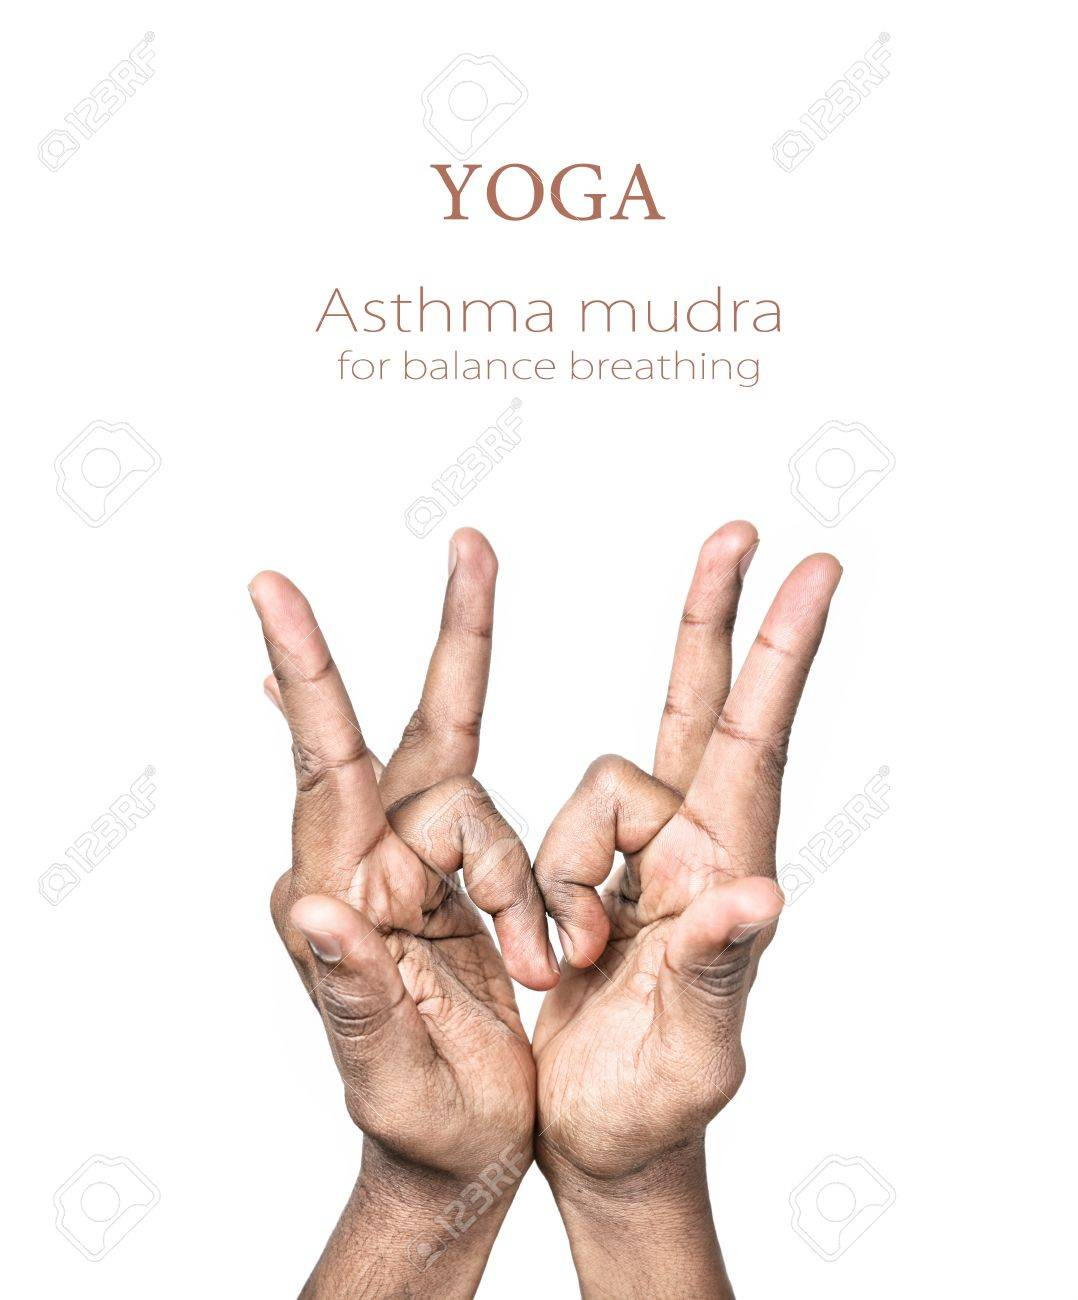 Hands in asthma mudra by Indian man isolated at white background. Gesture for balance breathing. Free space for your text and can be used in articles about mudras Stock Photo - 11763433